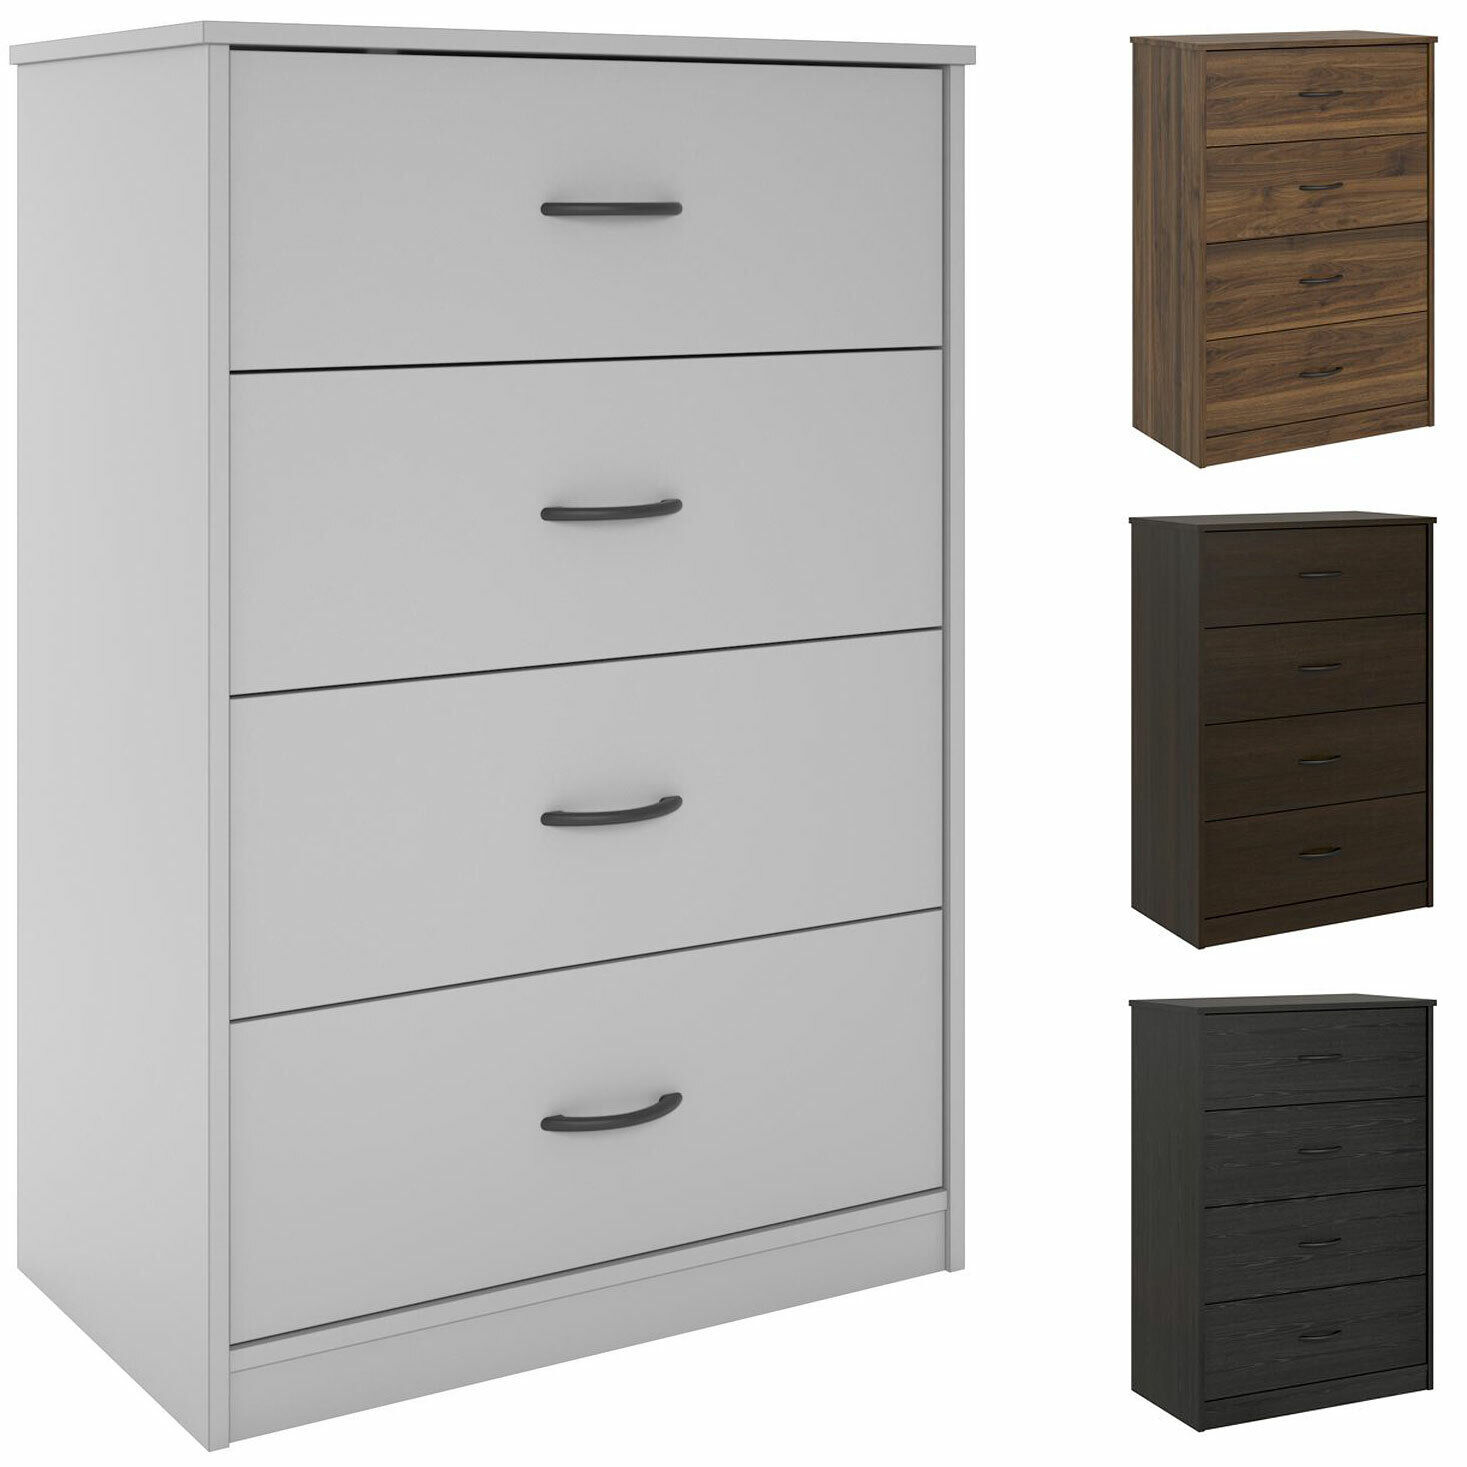 4 Drawer Dresser Chest Modern Bedroom